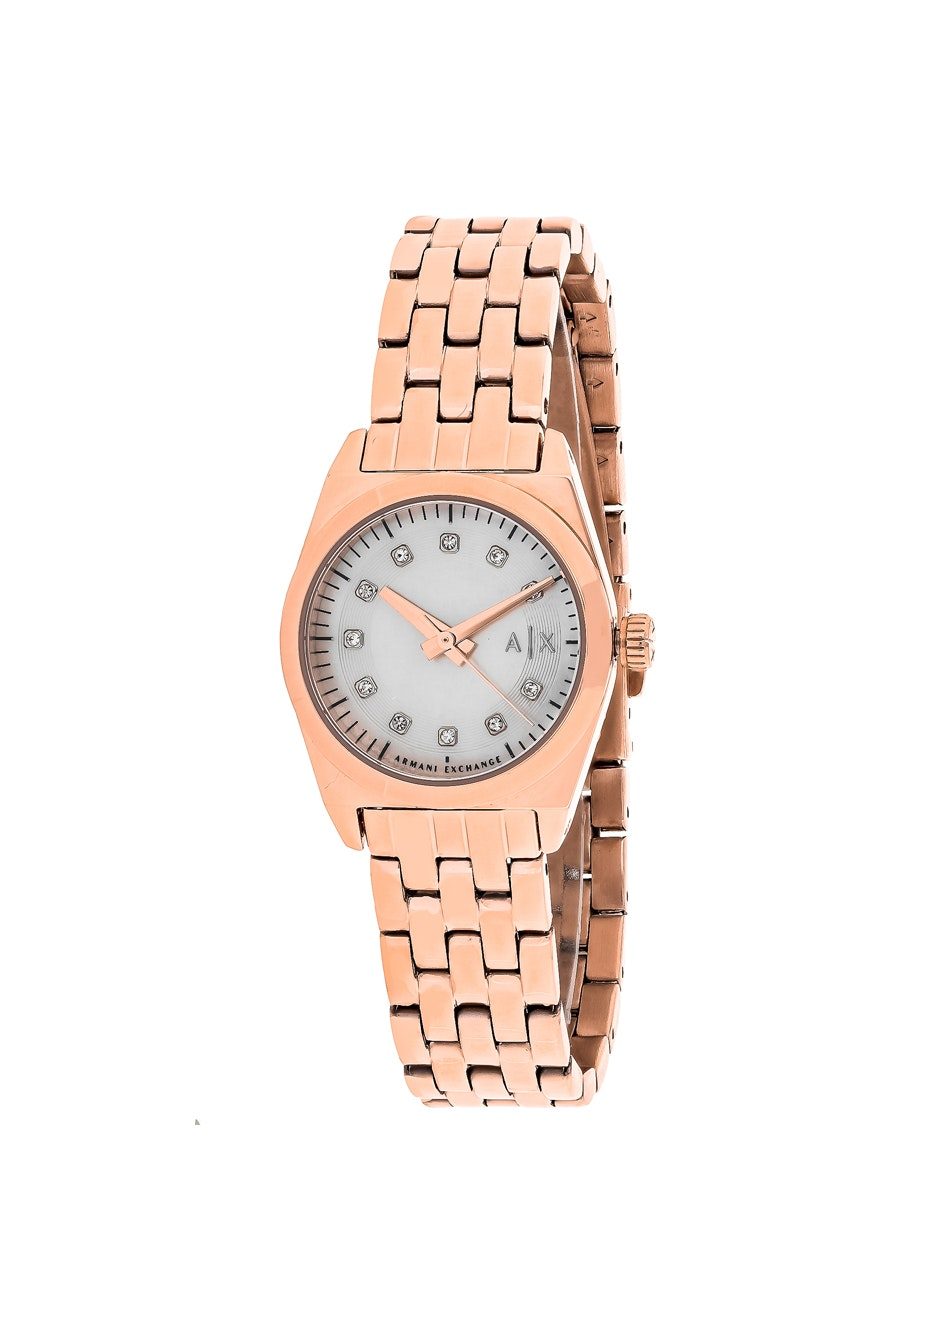 Armani Exchange Women's Miss Jackson - White MOP/Rose gold